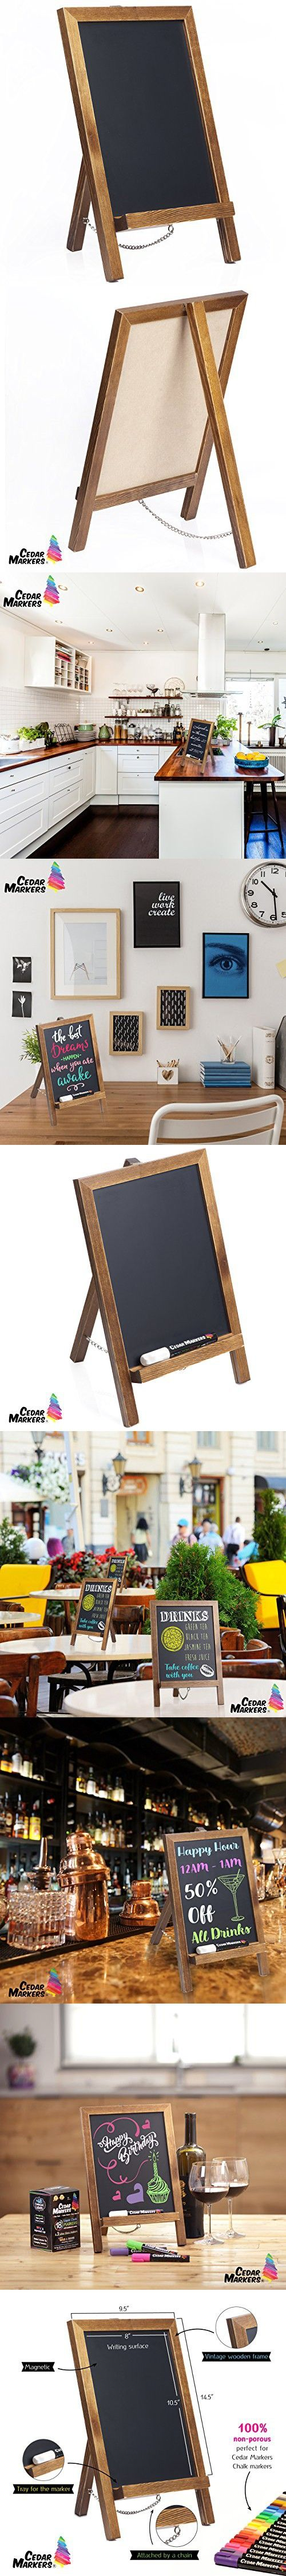 Cedar Markers 14x9.5 Unfinished Wood Framed Chalkboard. Mini Chalkboard Signs with Chain. Erase Slate Chalk Board Perfect for Chalk Markers and Vintage Wedding and Kitchen Decoration. (14x9.5)